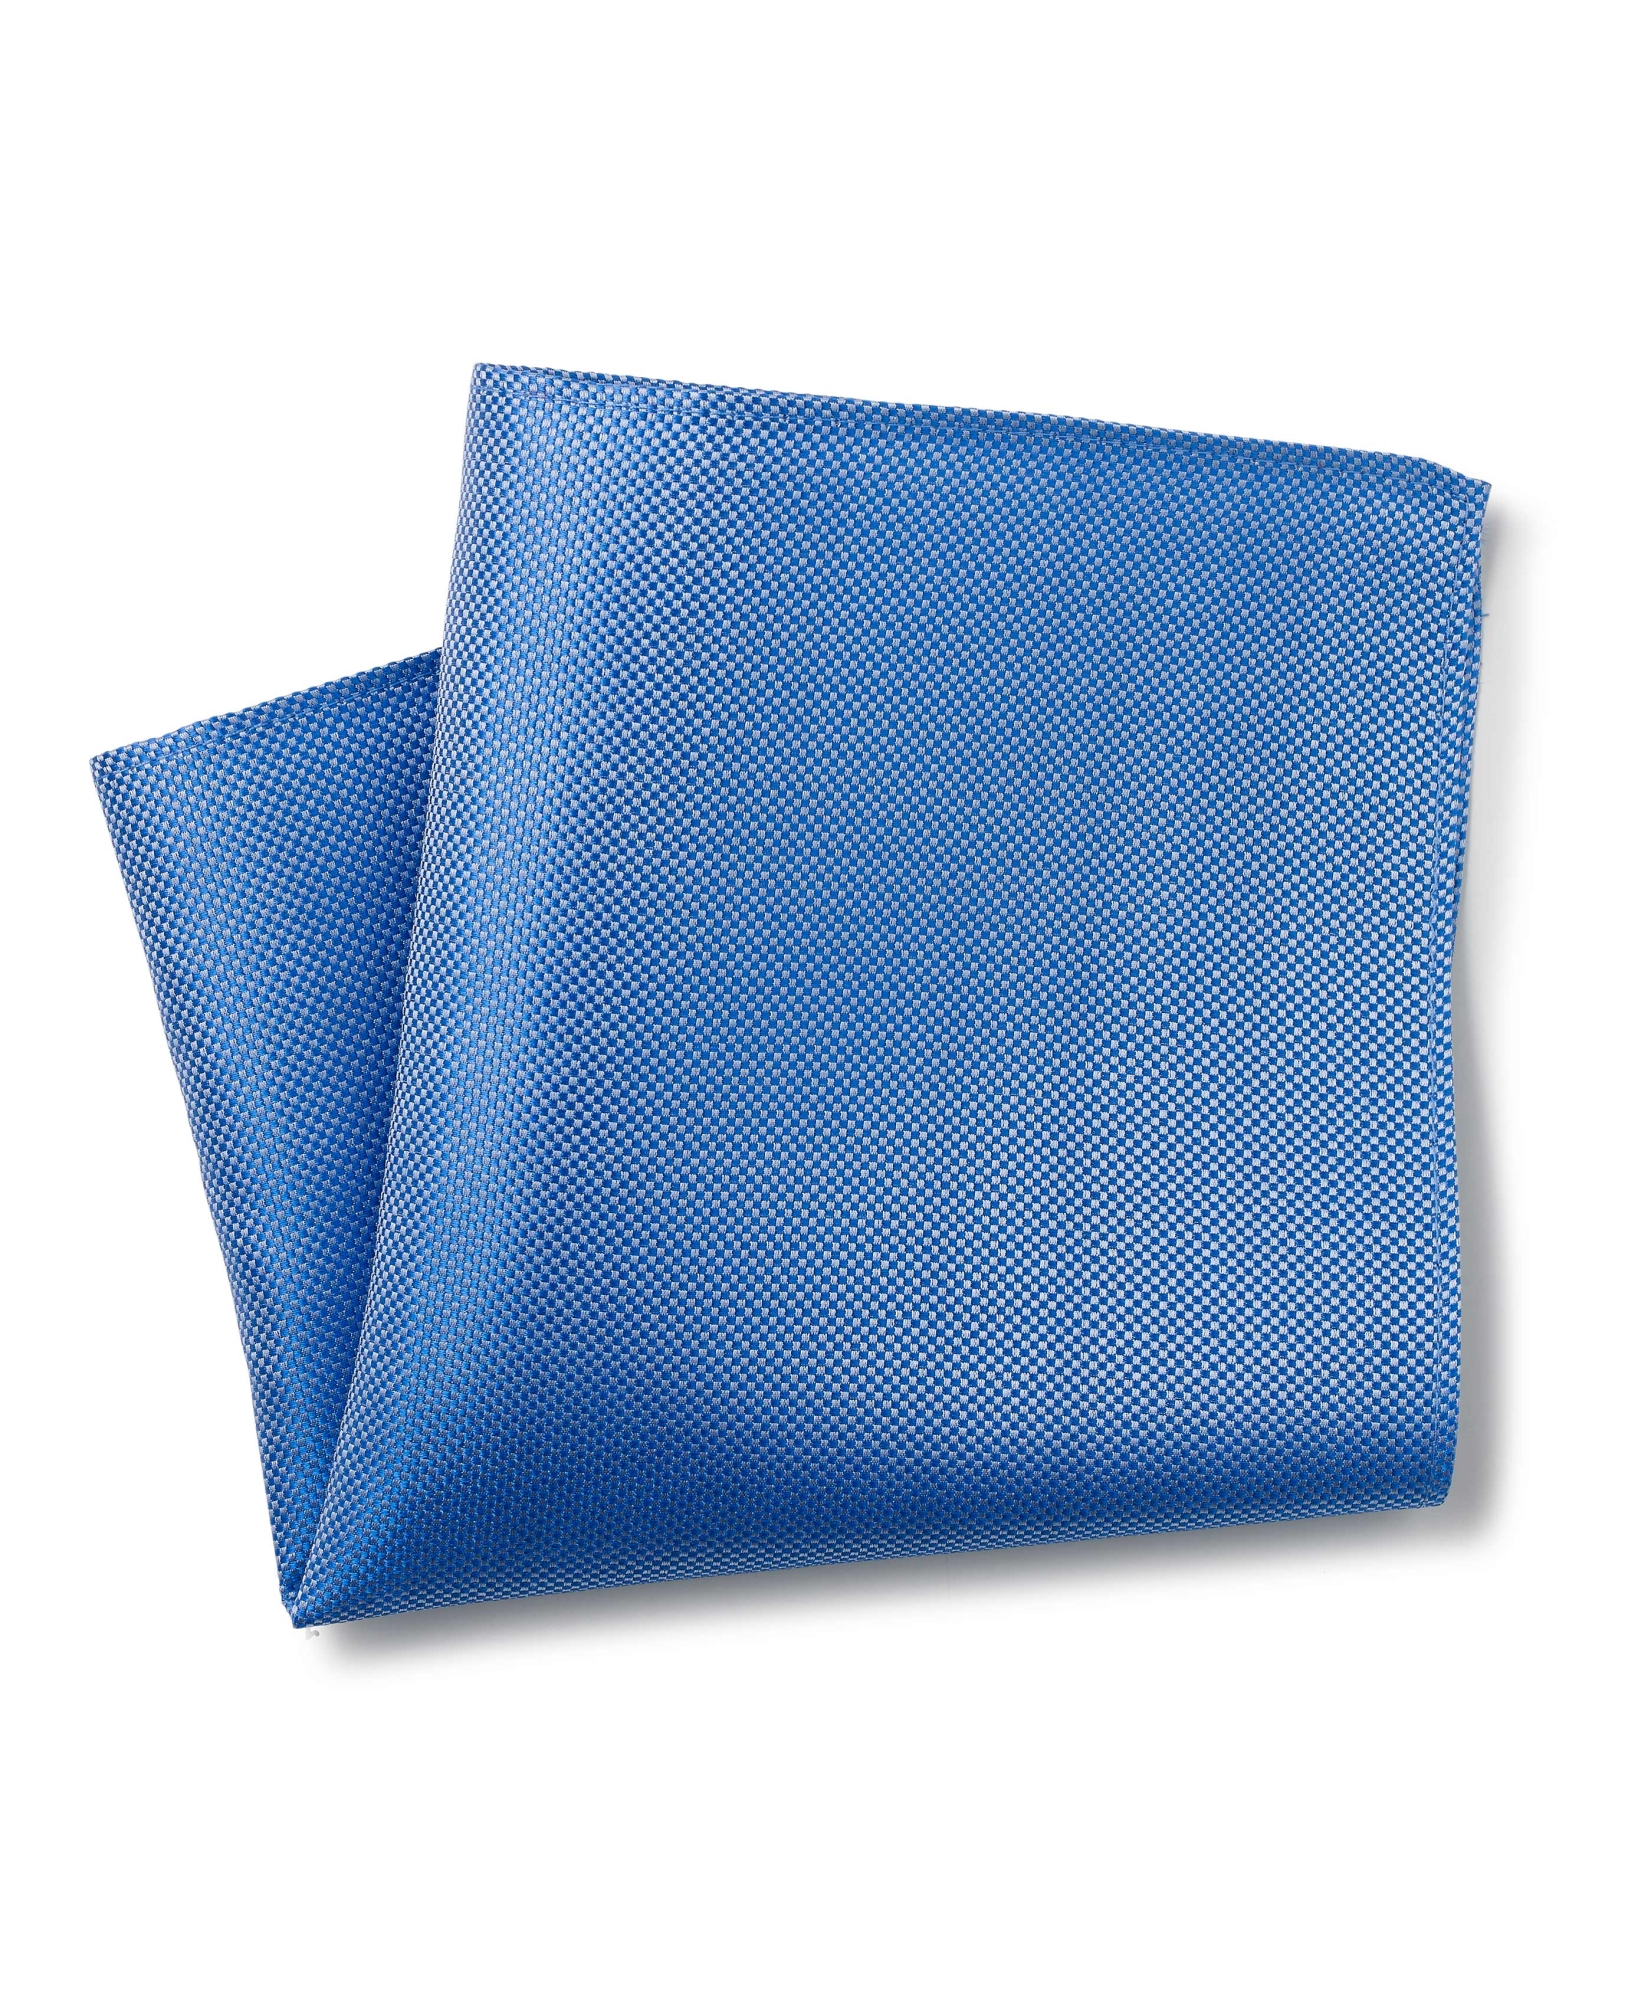 MID BLUE BIRDSEYE TEXTURED SILK POCKET SQUARE-MHK224BLU000